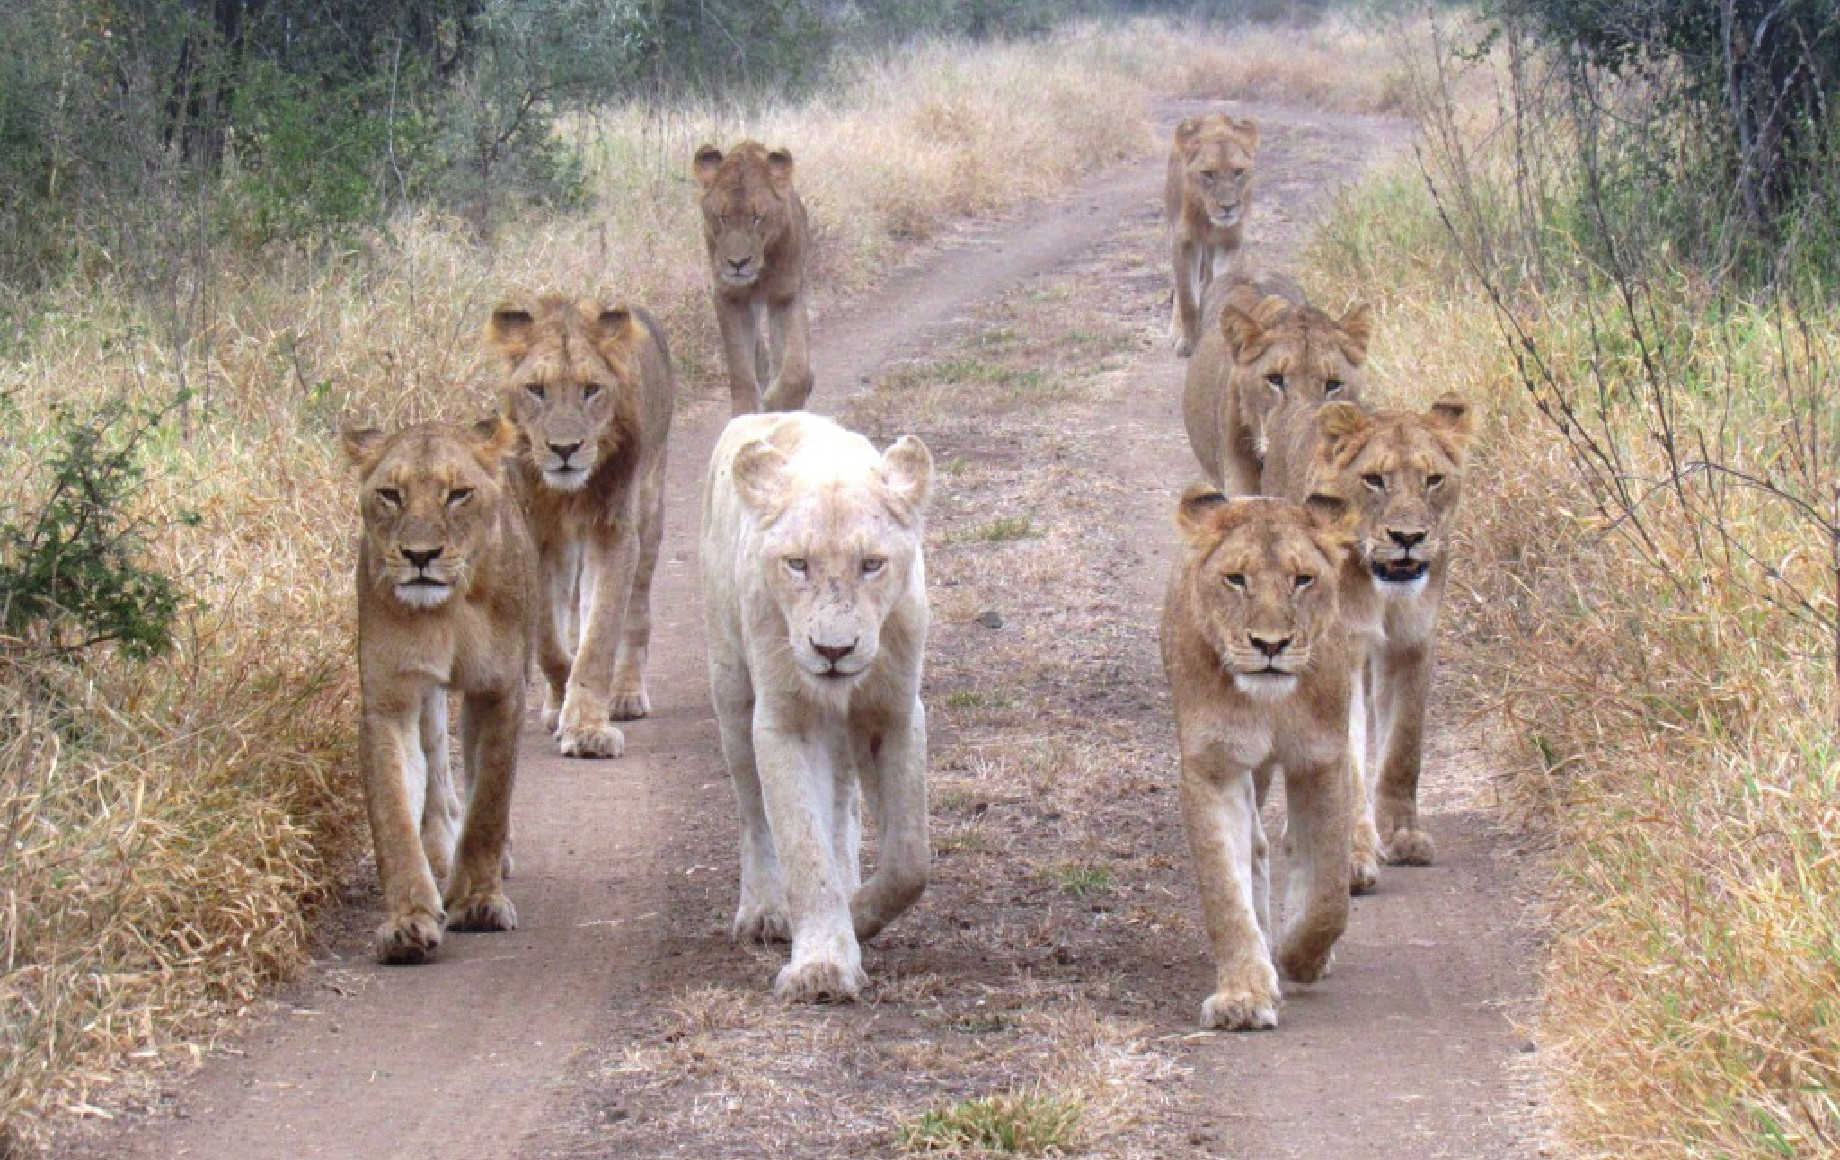 A group of lions walking